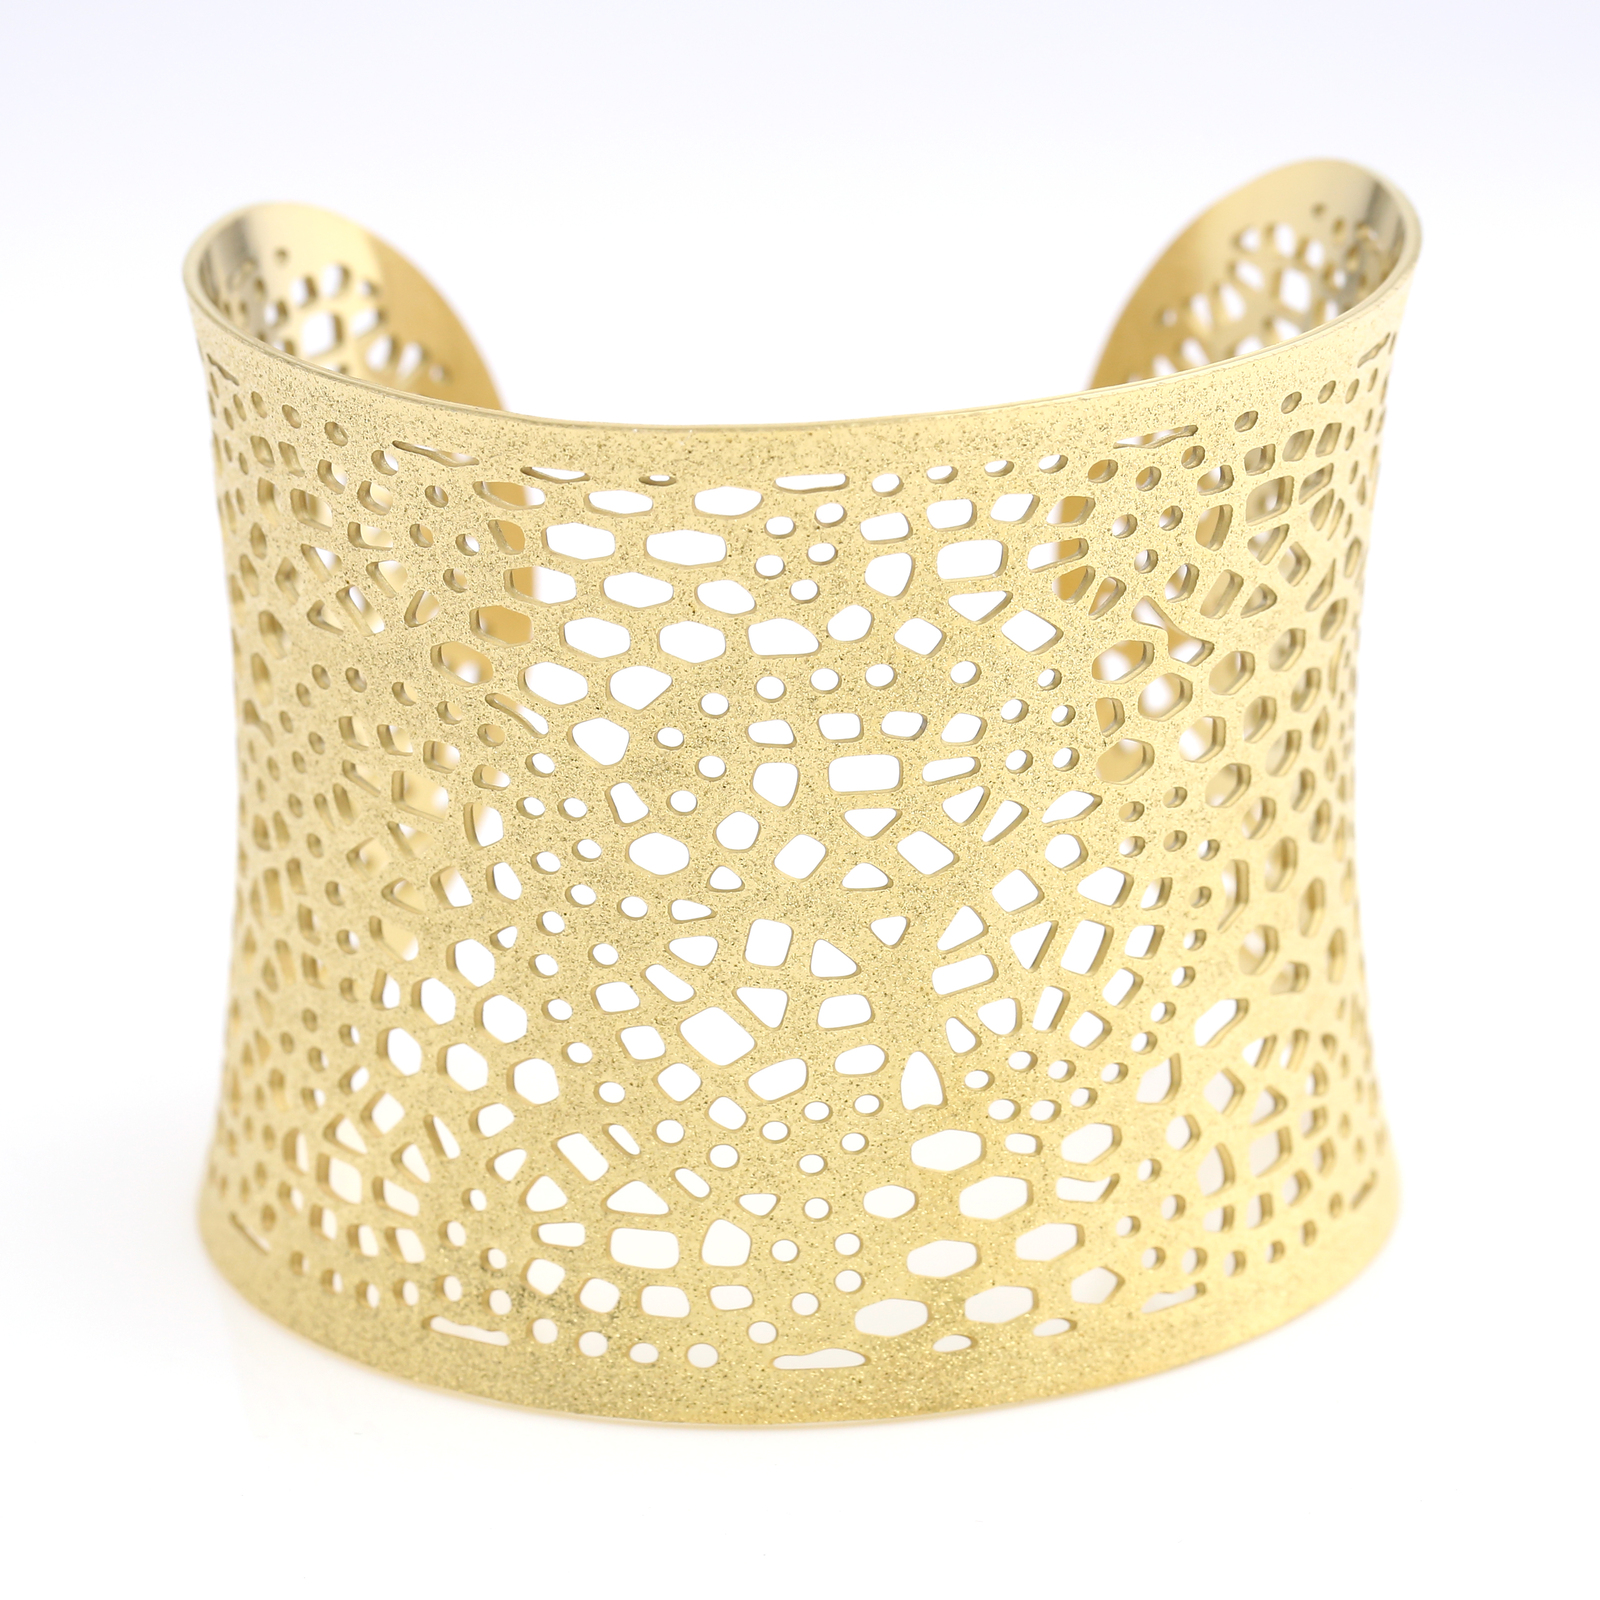 UNITED ELEGANCE Stylish Gold Tone Cuff Bracelet With Lace Cut Out Design